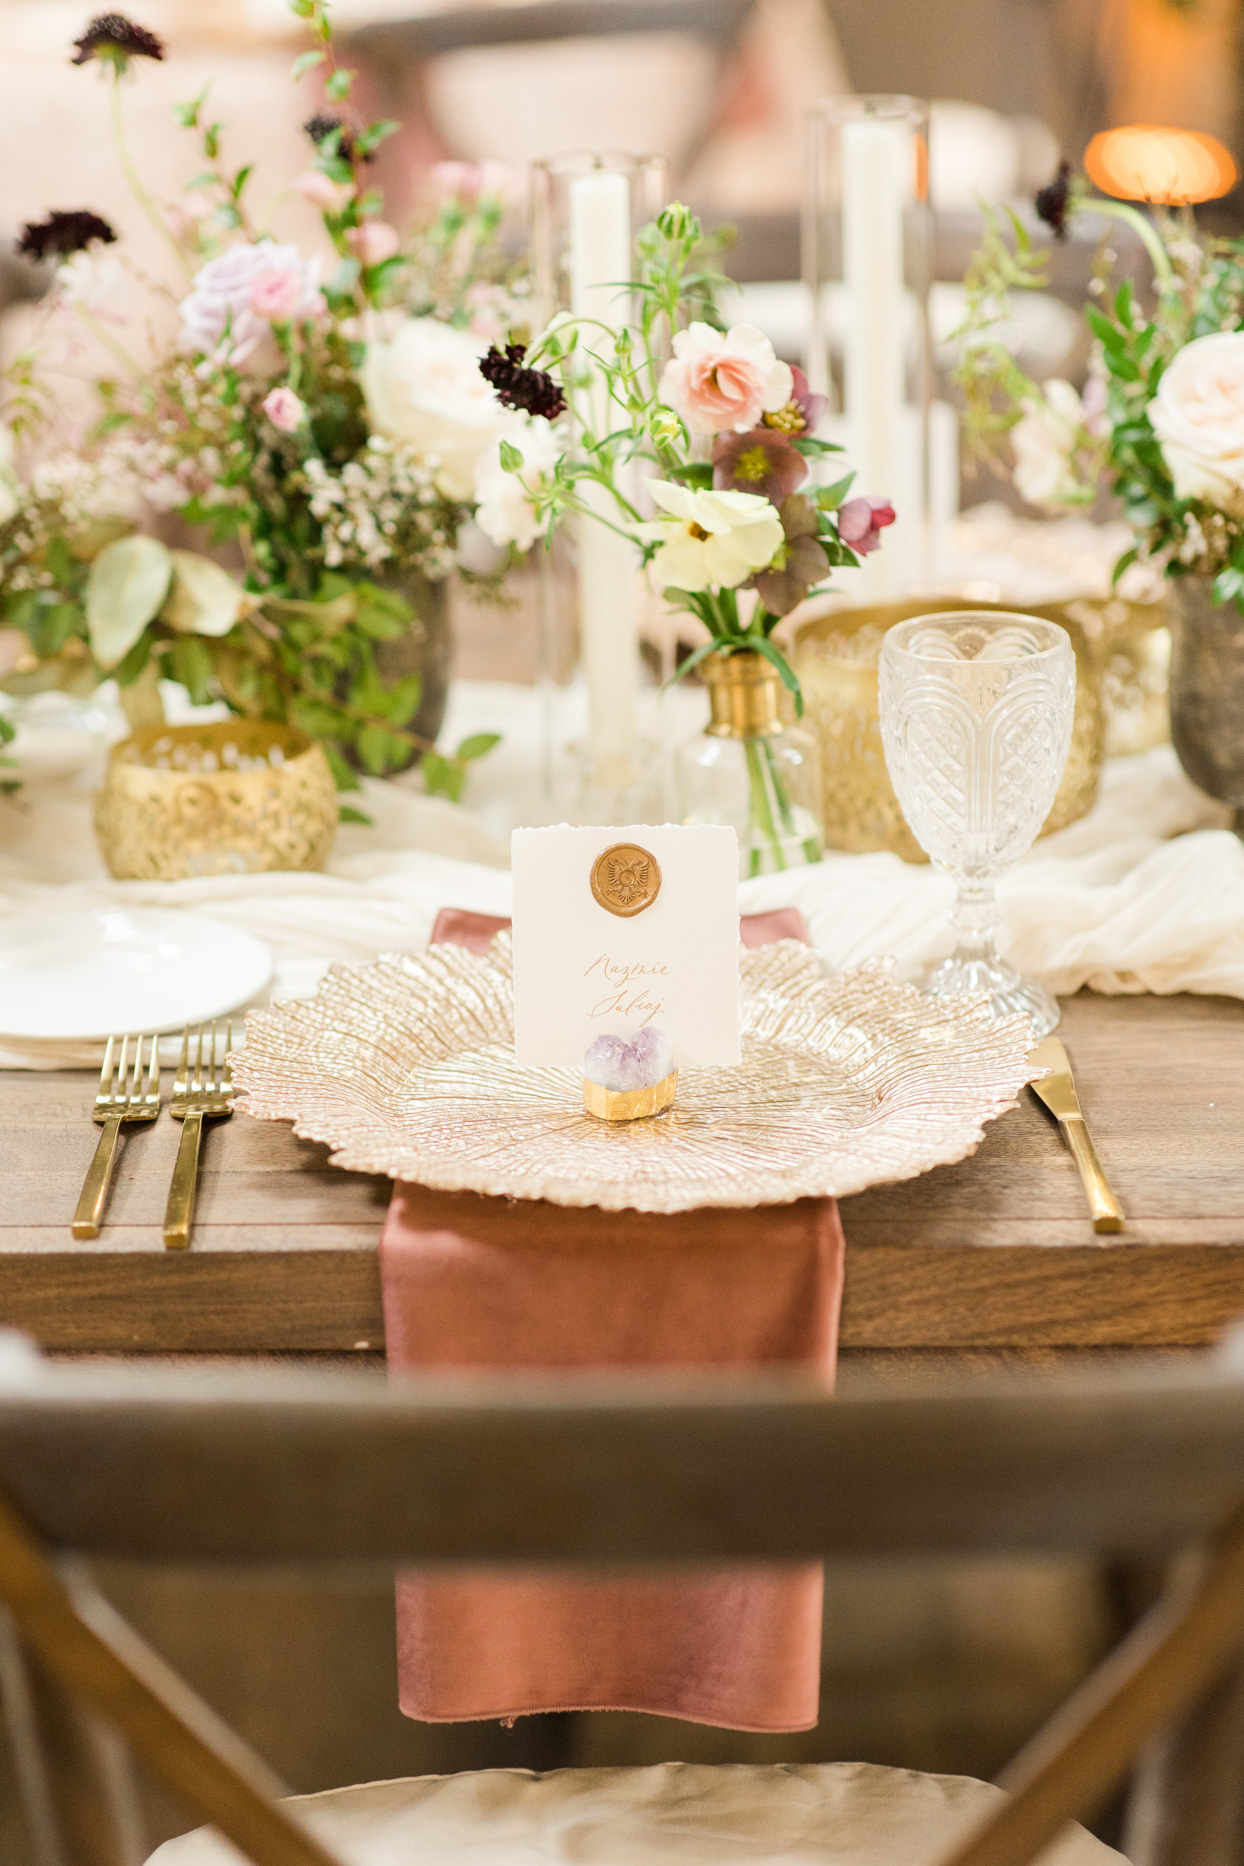 gold romantic place settings for wedding reception